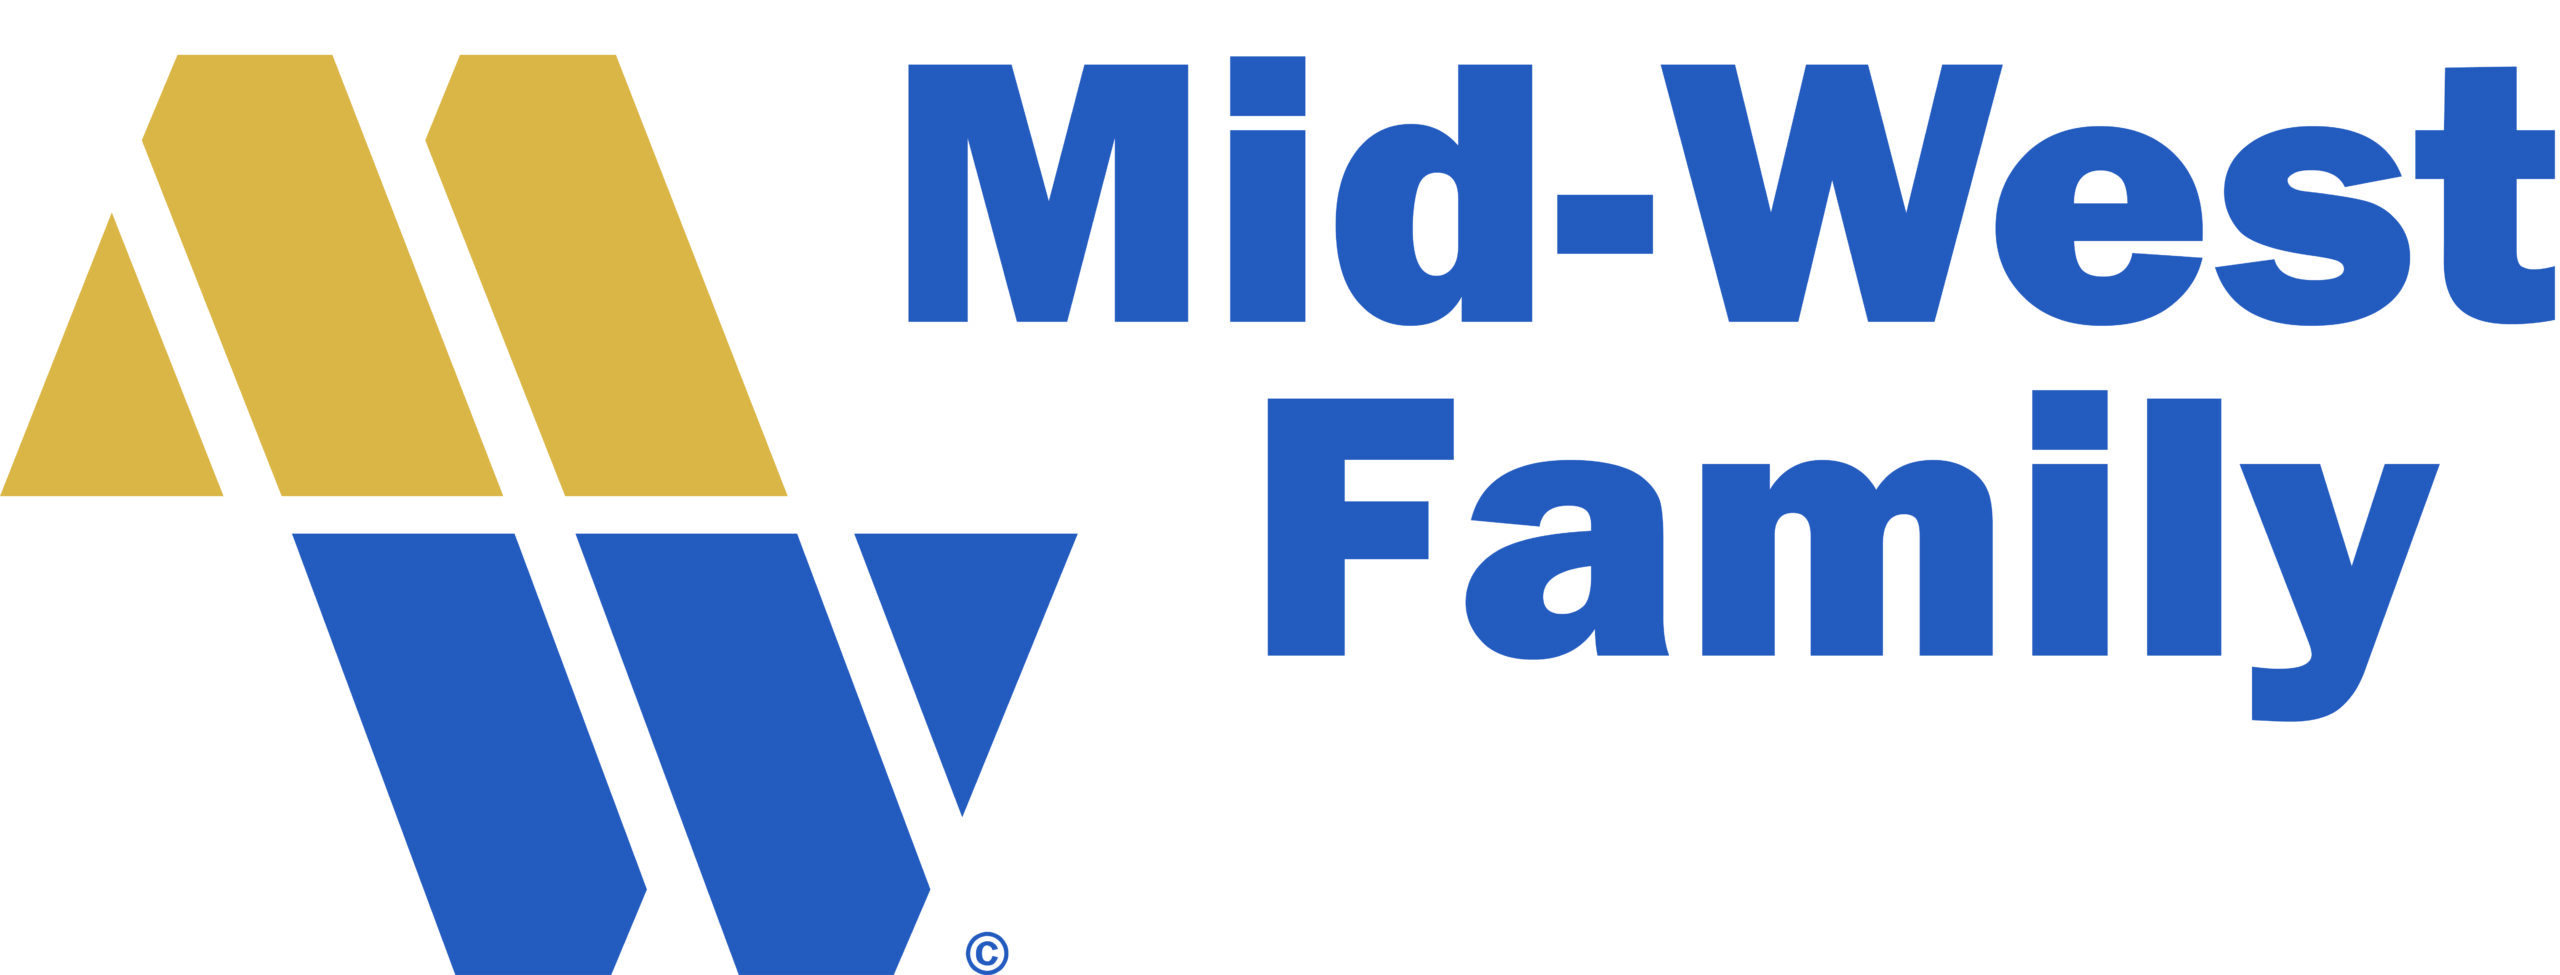 Wicked Smart Webinar – Presented By Mid-West Family